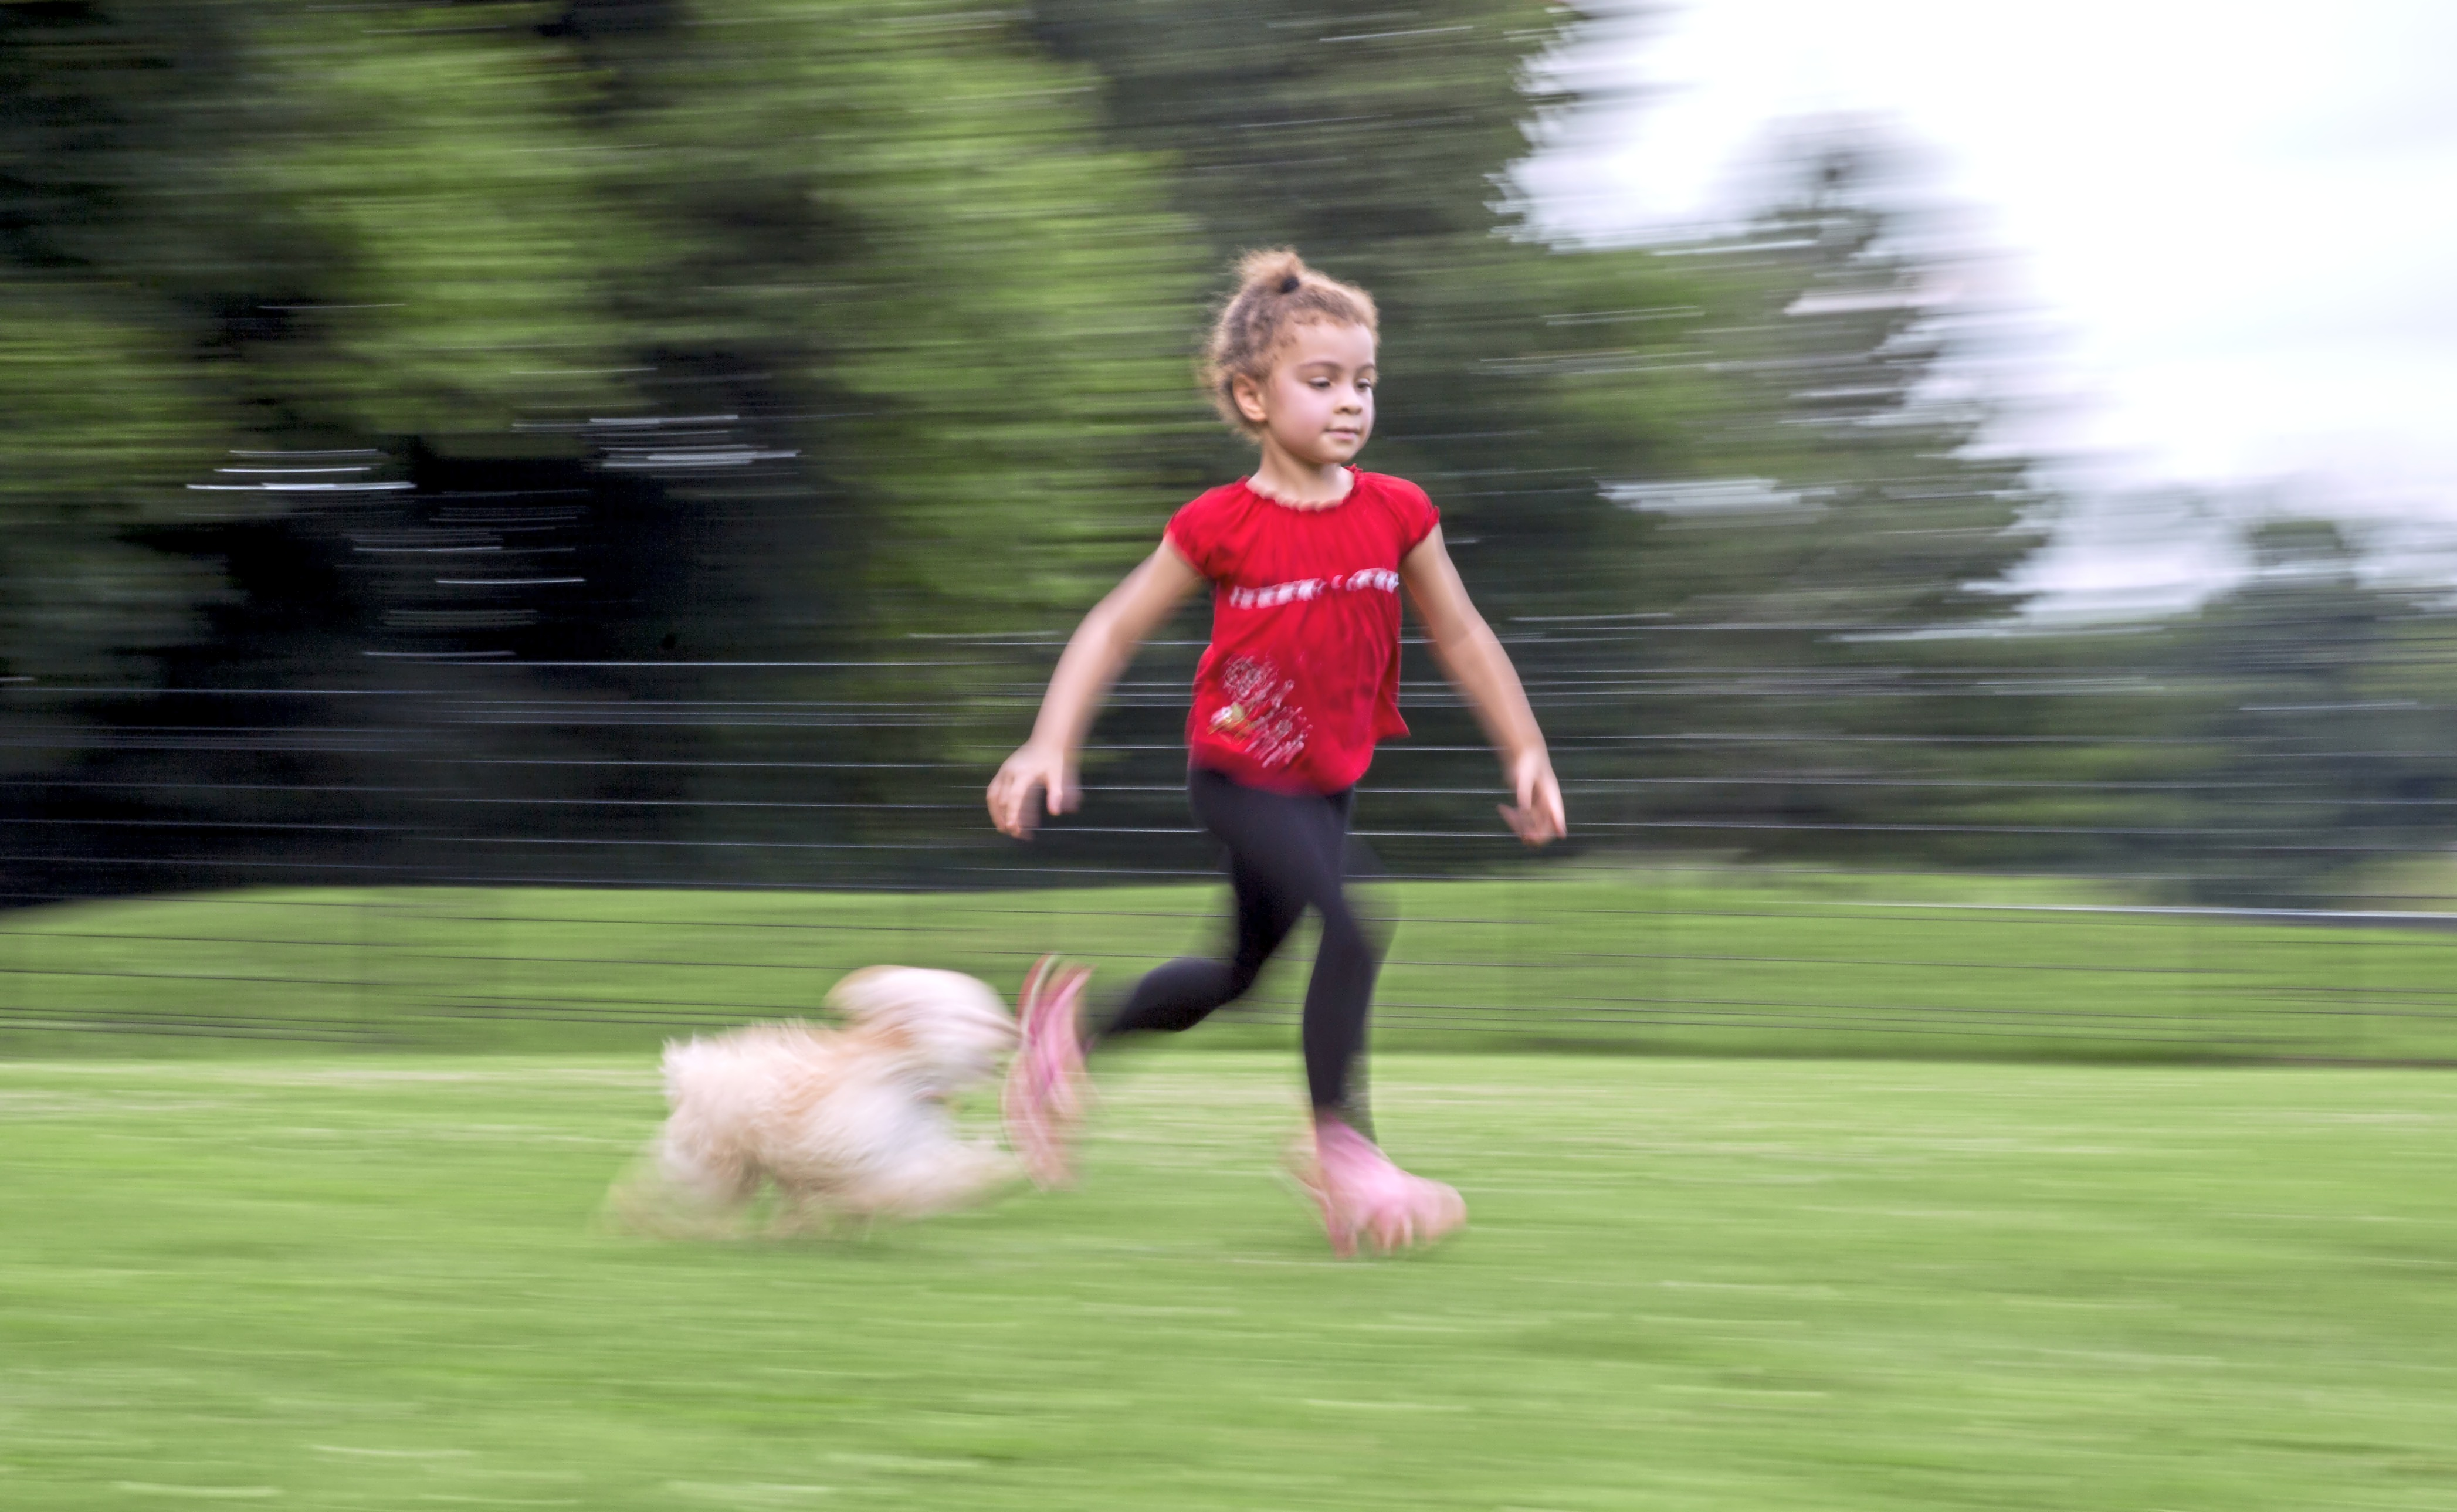 20170802acFeature03-2 Amaria Brown, 4, of Highland Park races against her dog, Bitsy, at the Highland Park Dog Park.